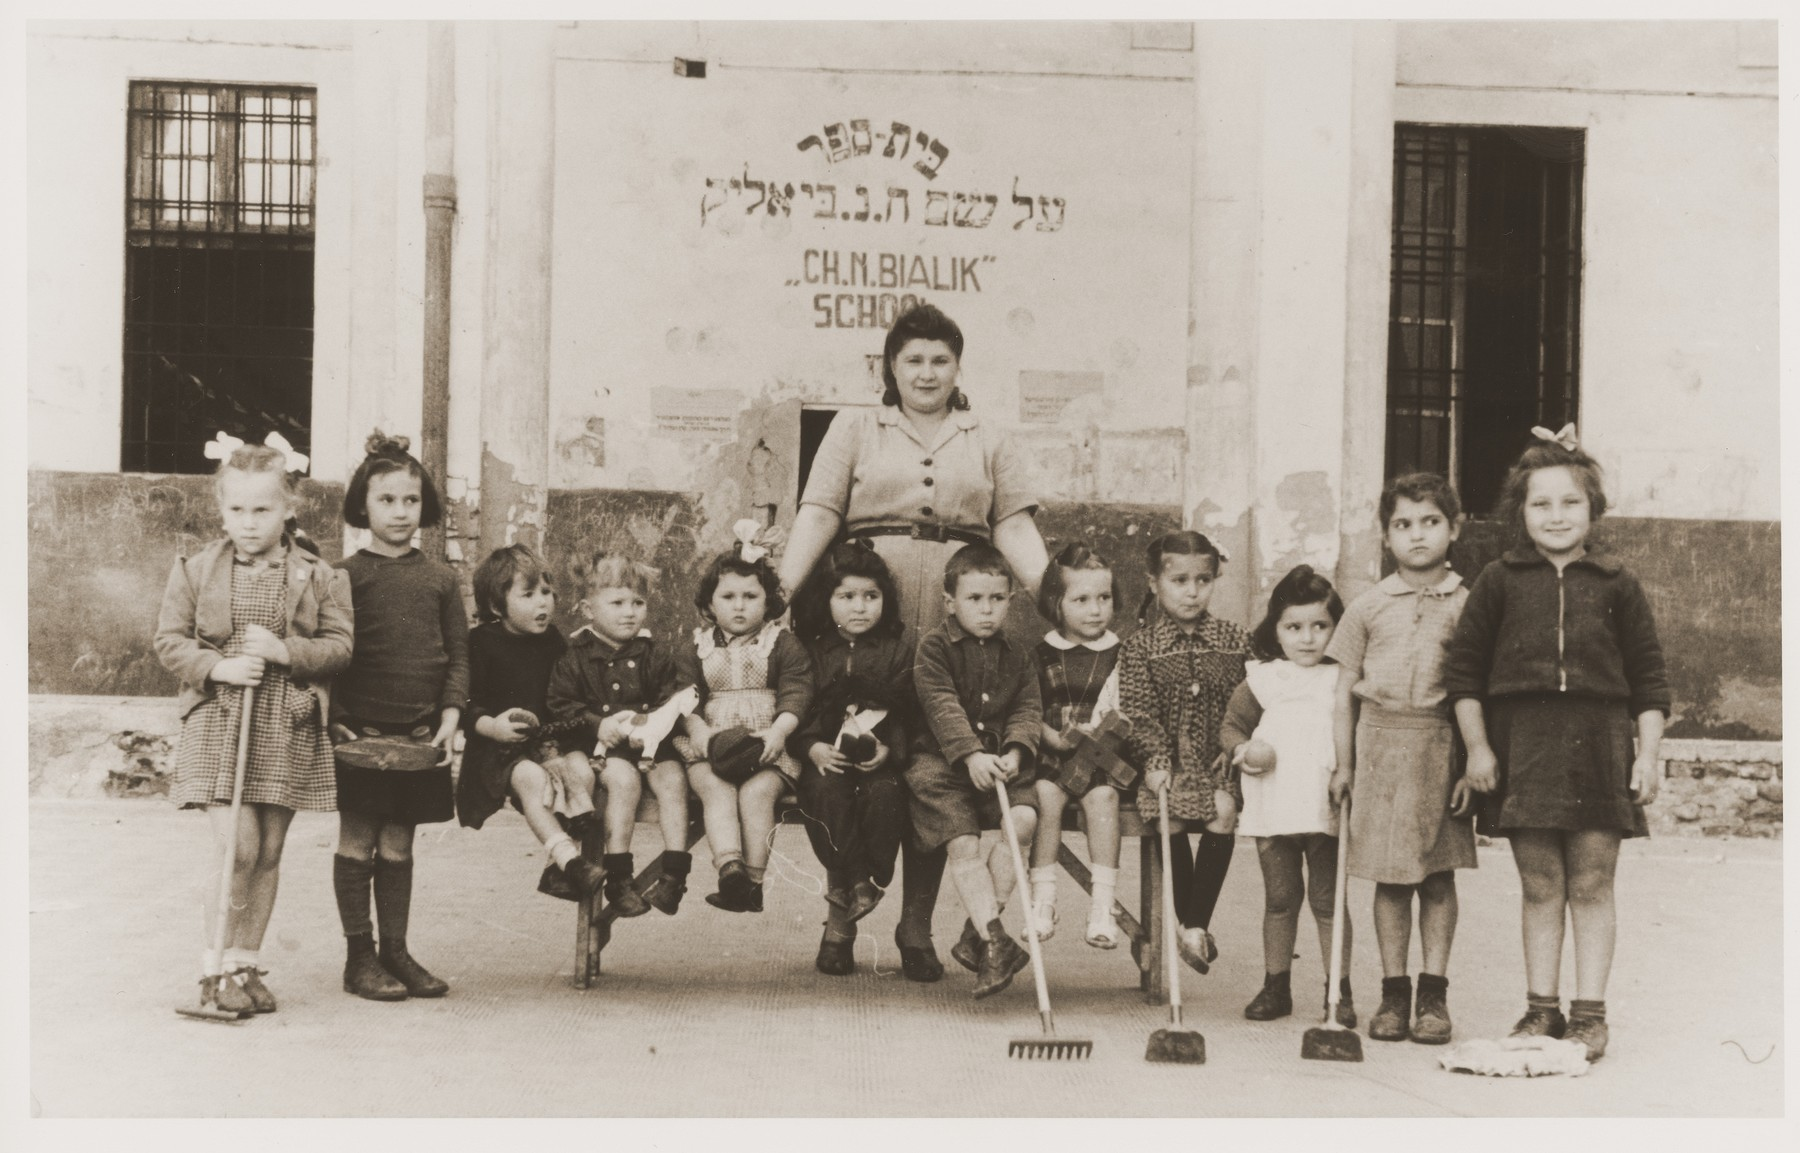 Jewish DP children at the Cremona displaced persons camp pose outside the Chaim Nachman Bialik school holding rakes and hoes.  Among those pictured is Masha Leikach (far left).